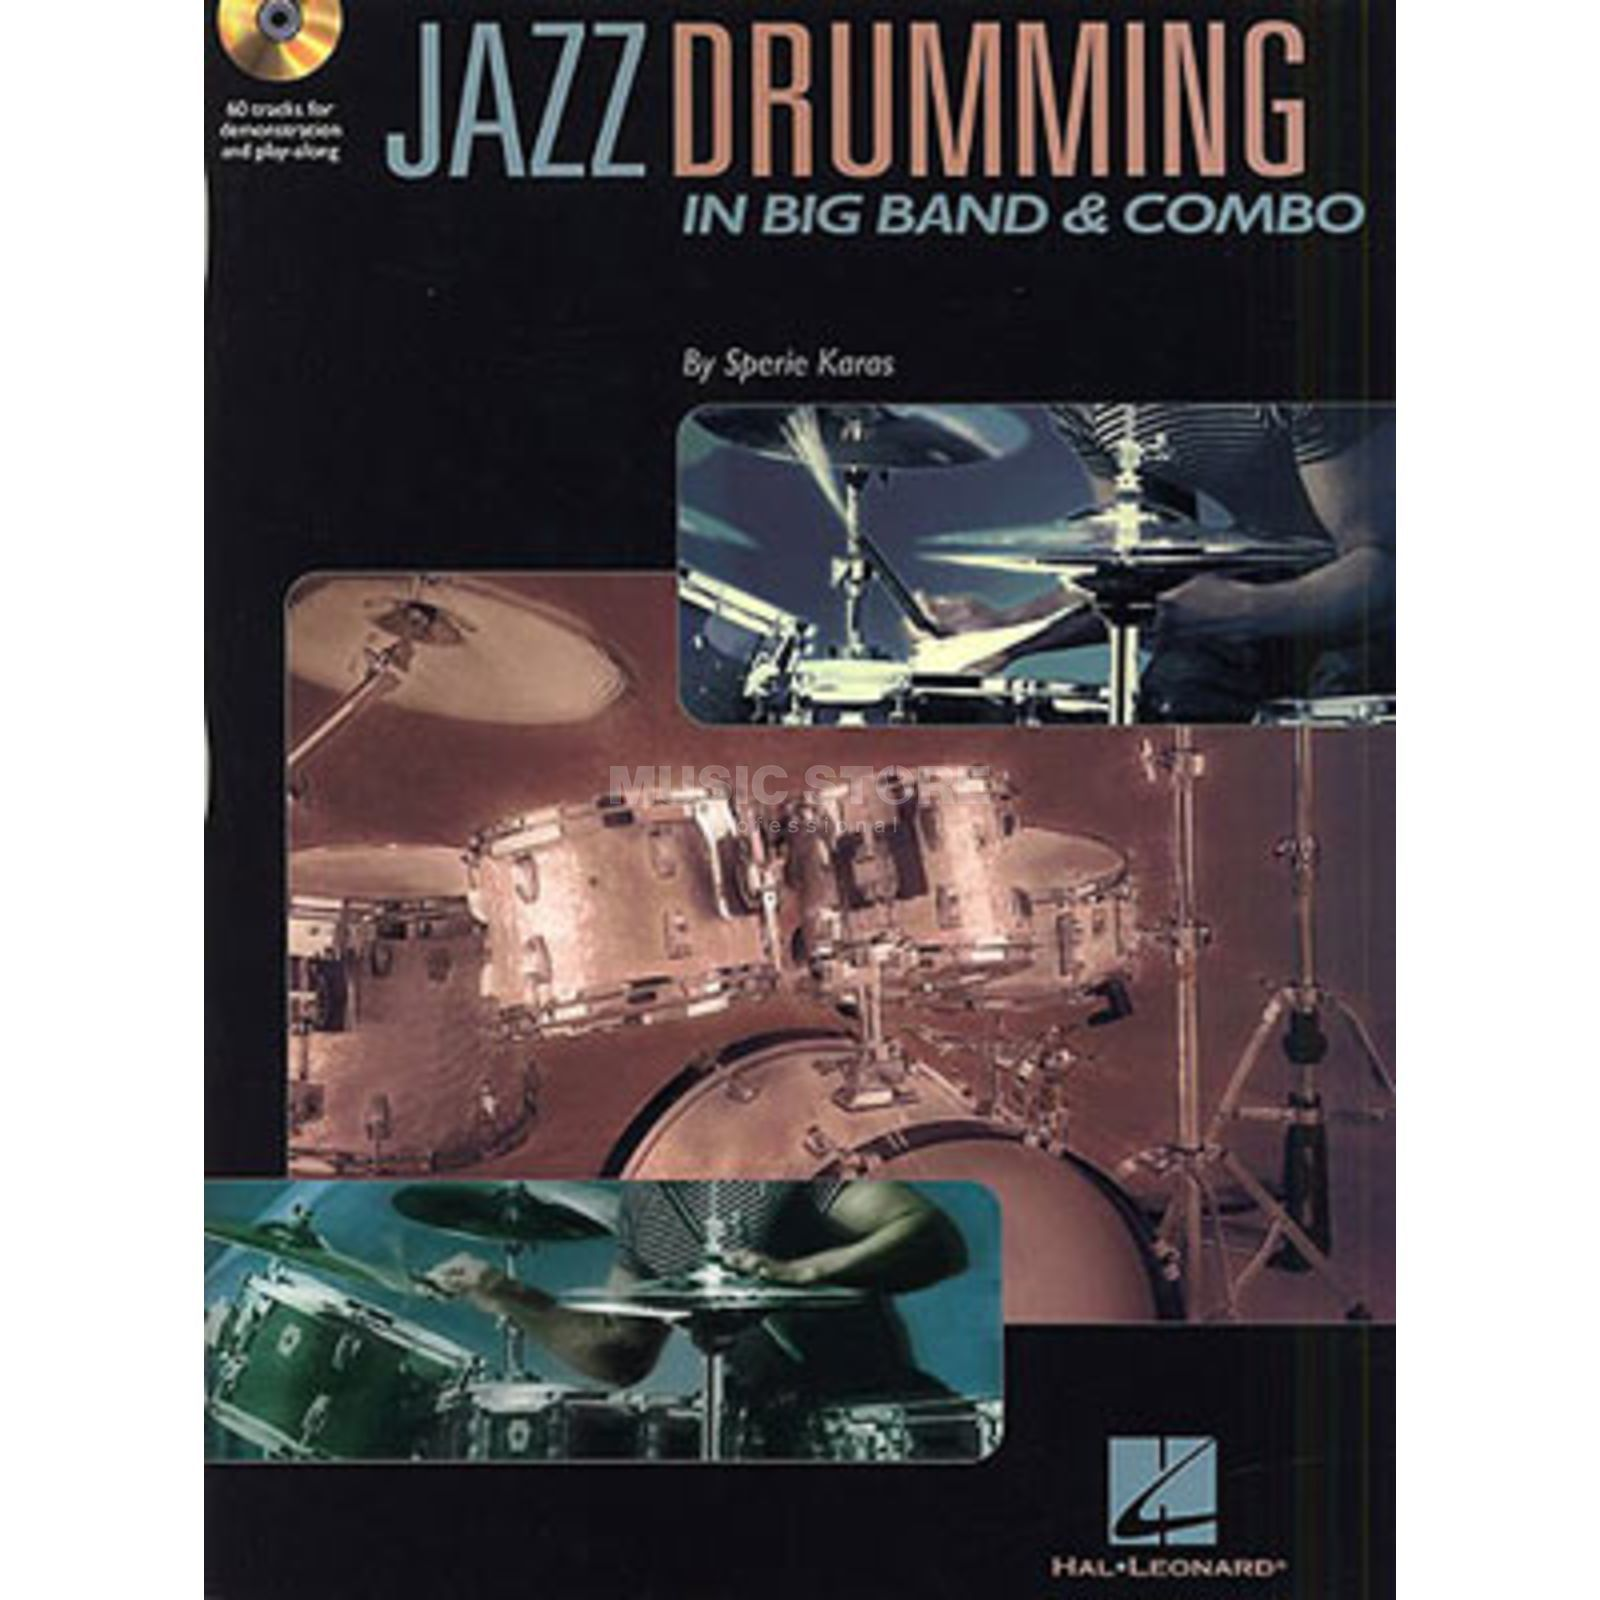 Hal Leonard Jazz Drumming in Big Band Sperie Karas,inkl. CD Produktbillede